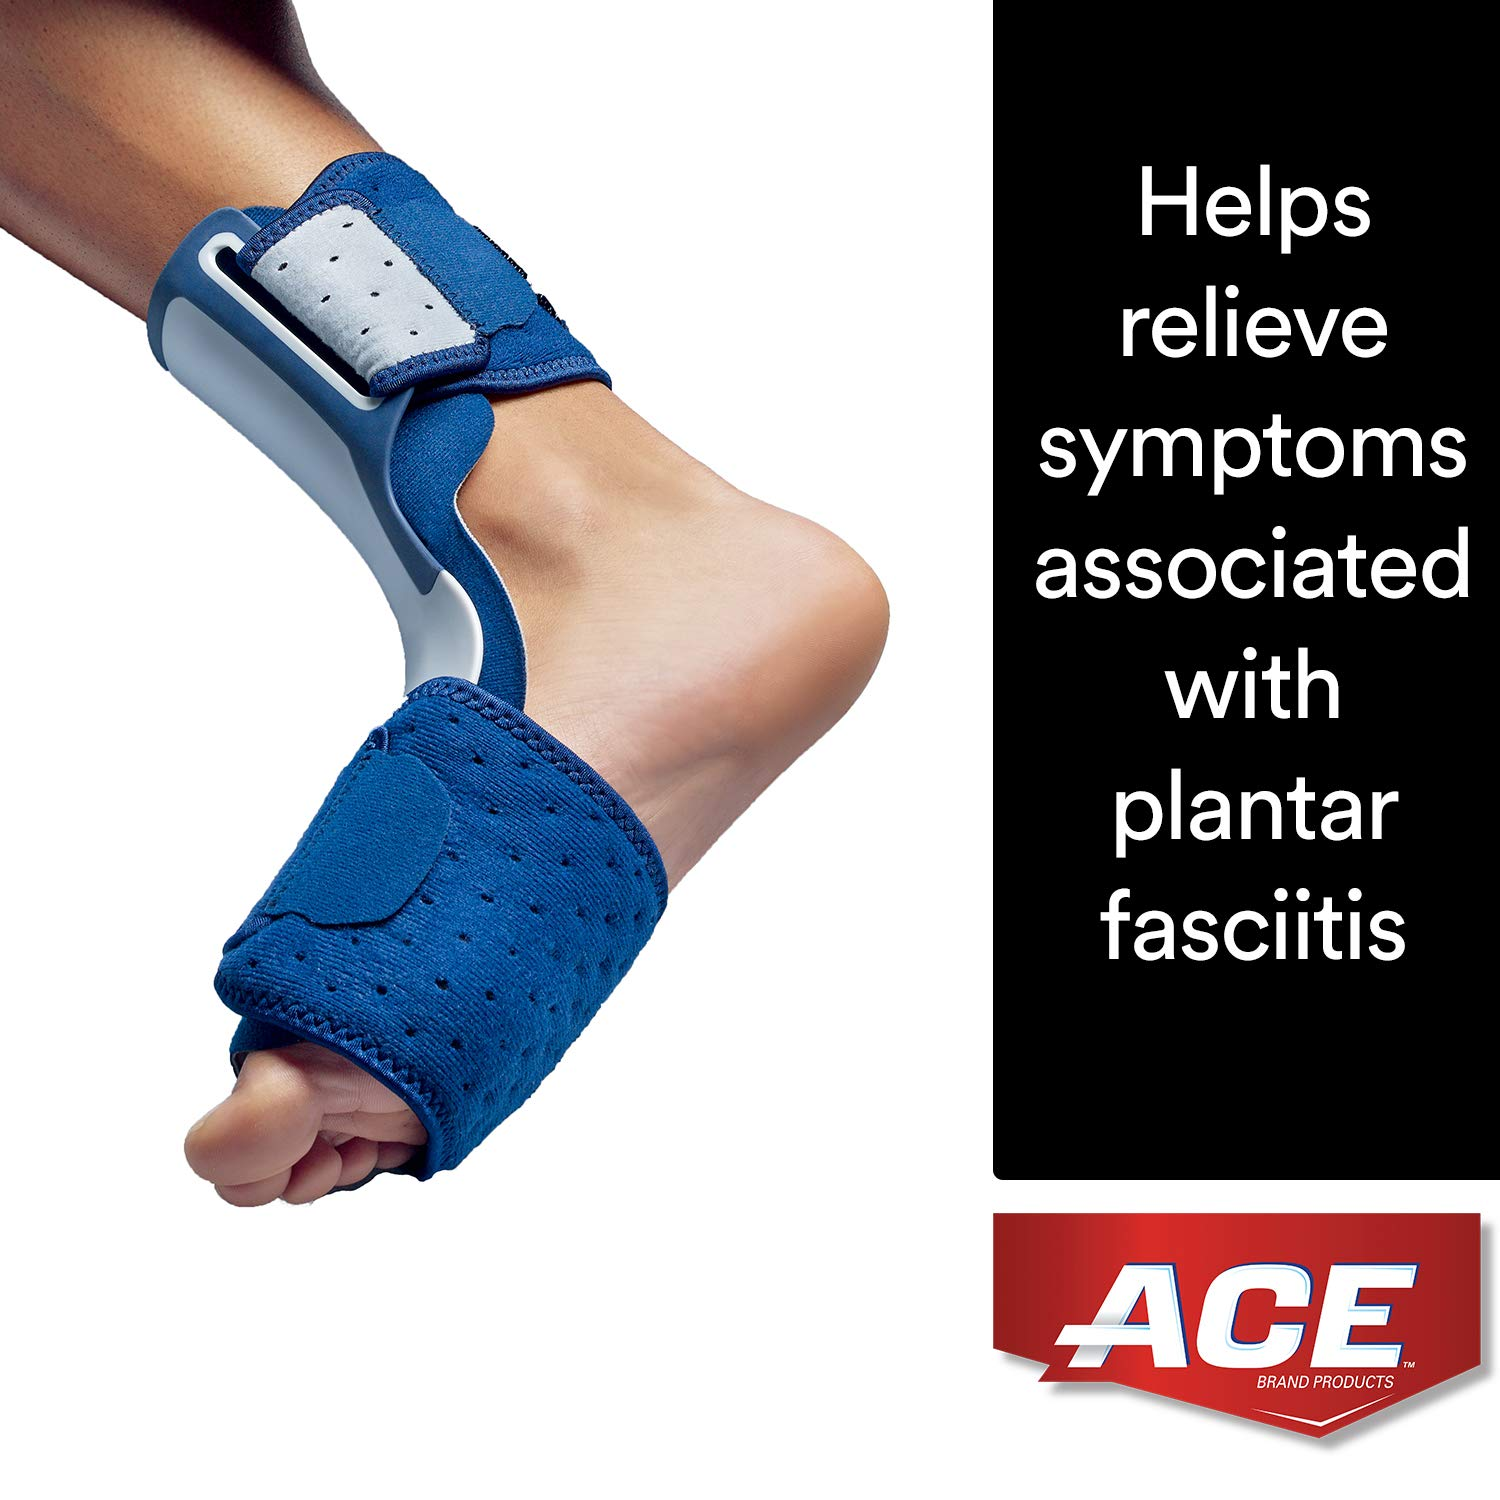 ACE Brand Plantar Fasciitis Sleep Support, America's Most Trusted Brand of Braces and Supports, Money Back Satisfaction Guarantee by ACE